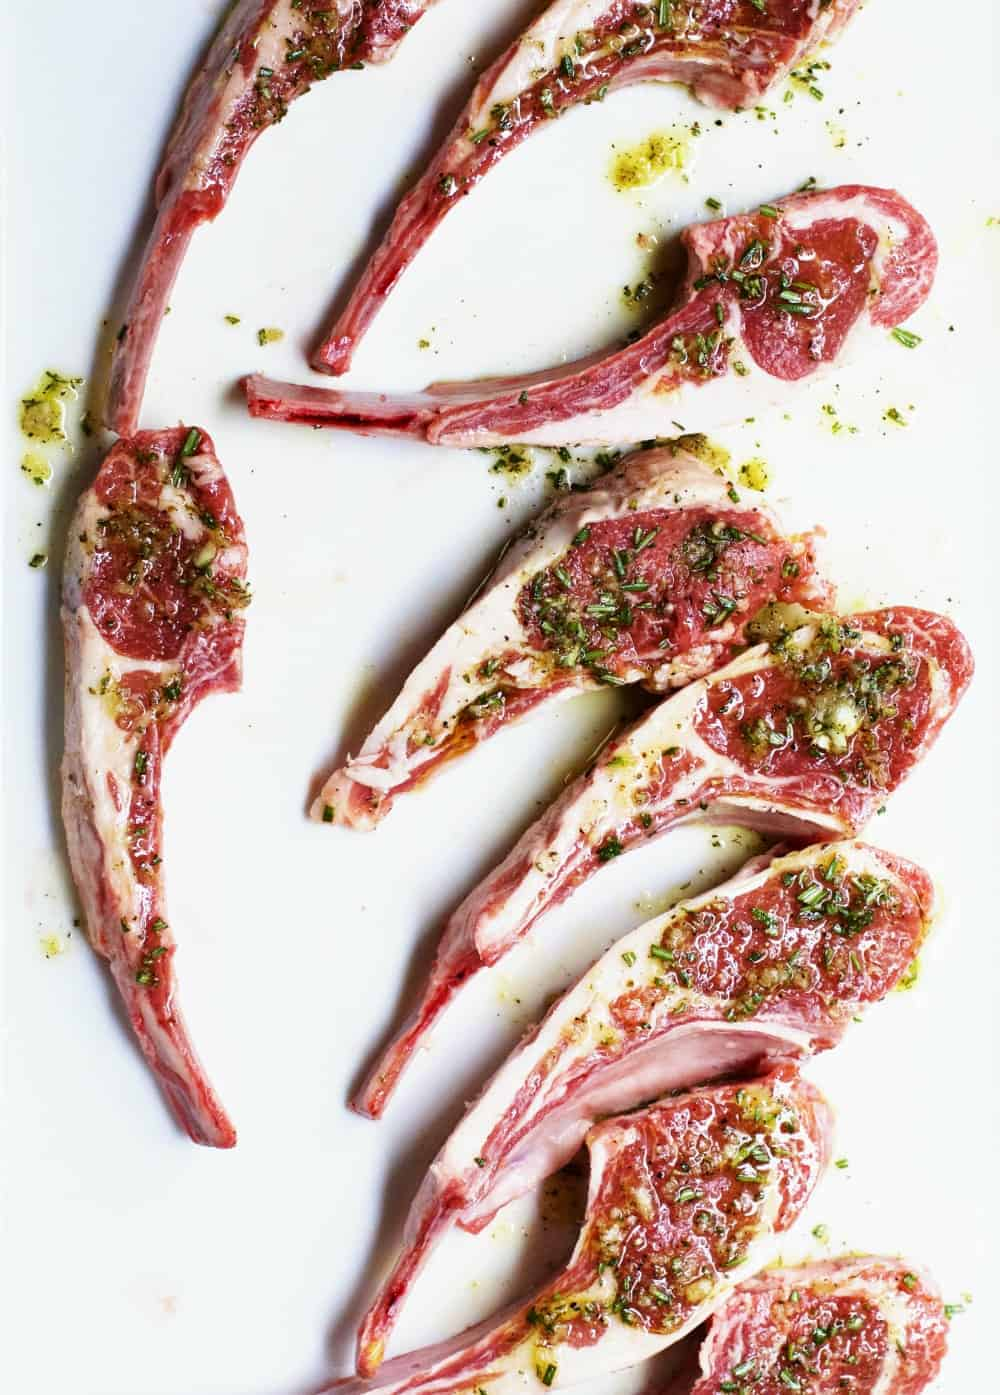 Lamb Chops on a White Platter Ready to Grill